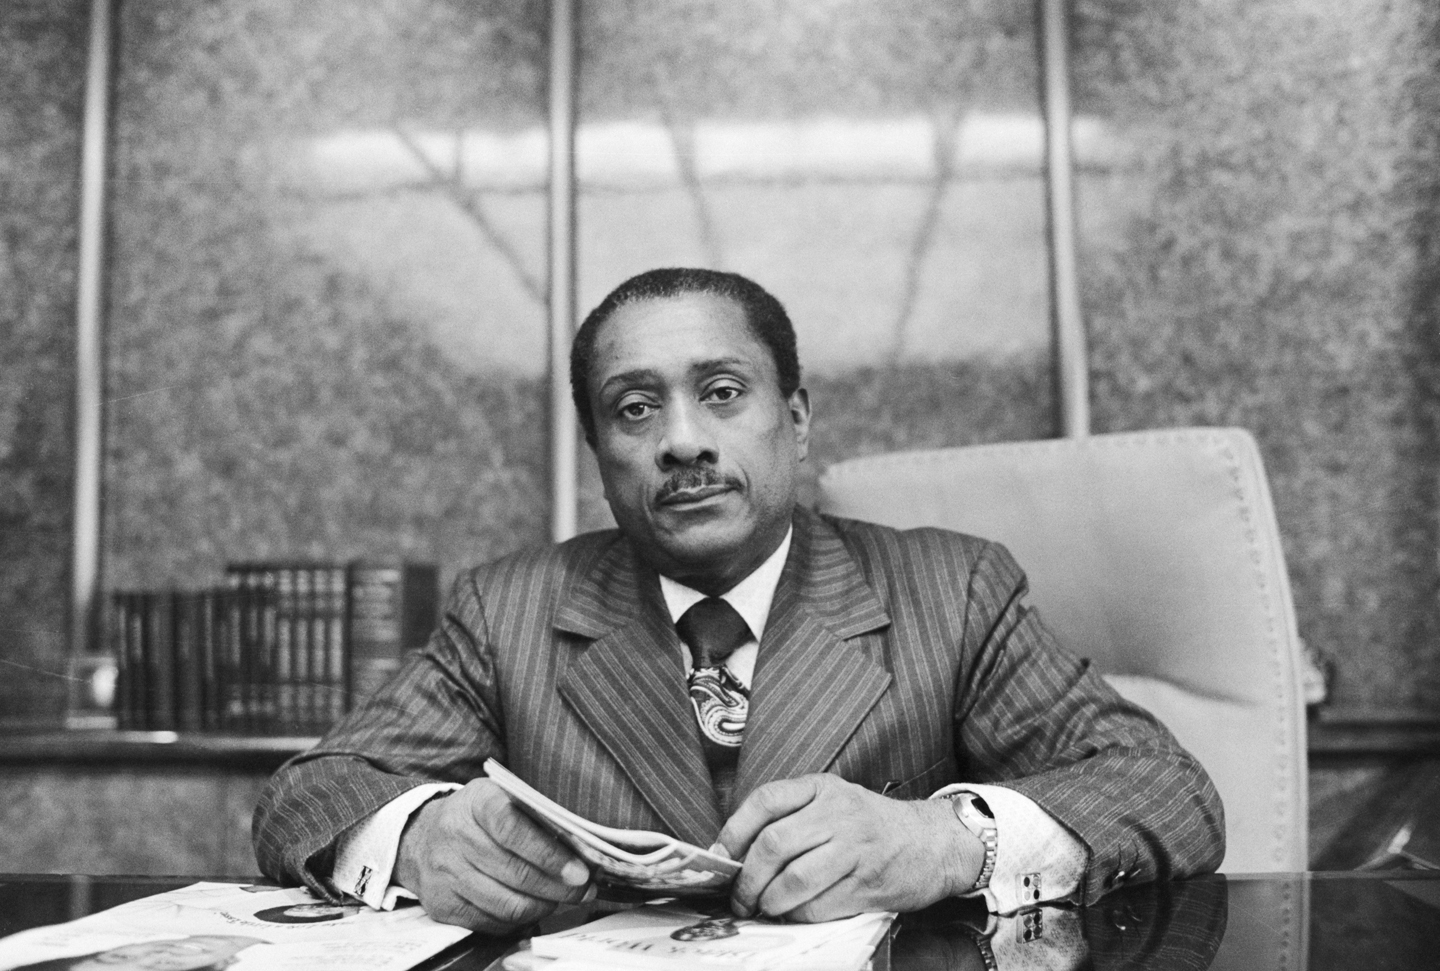 John H. Johnson, successful head of Johnson Publications Inc., a multi-million dollar corporation, selected a book from his library in his office in Chicago. From a $25 a week office boy for the Supreme Insurance Company at age of 19, he is now the Board Chairman and its largest stockholder, as well as publisher of the black-oriented magazines.